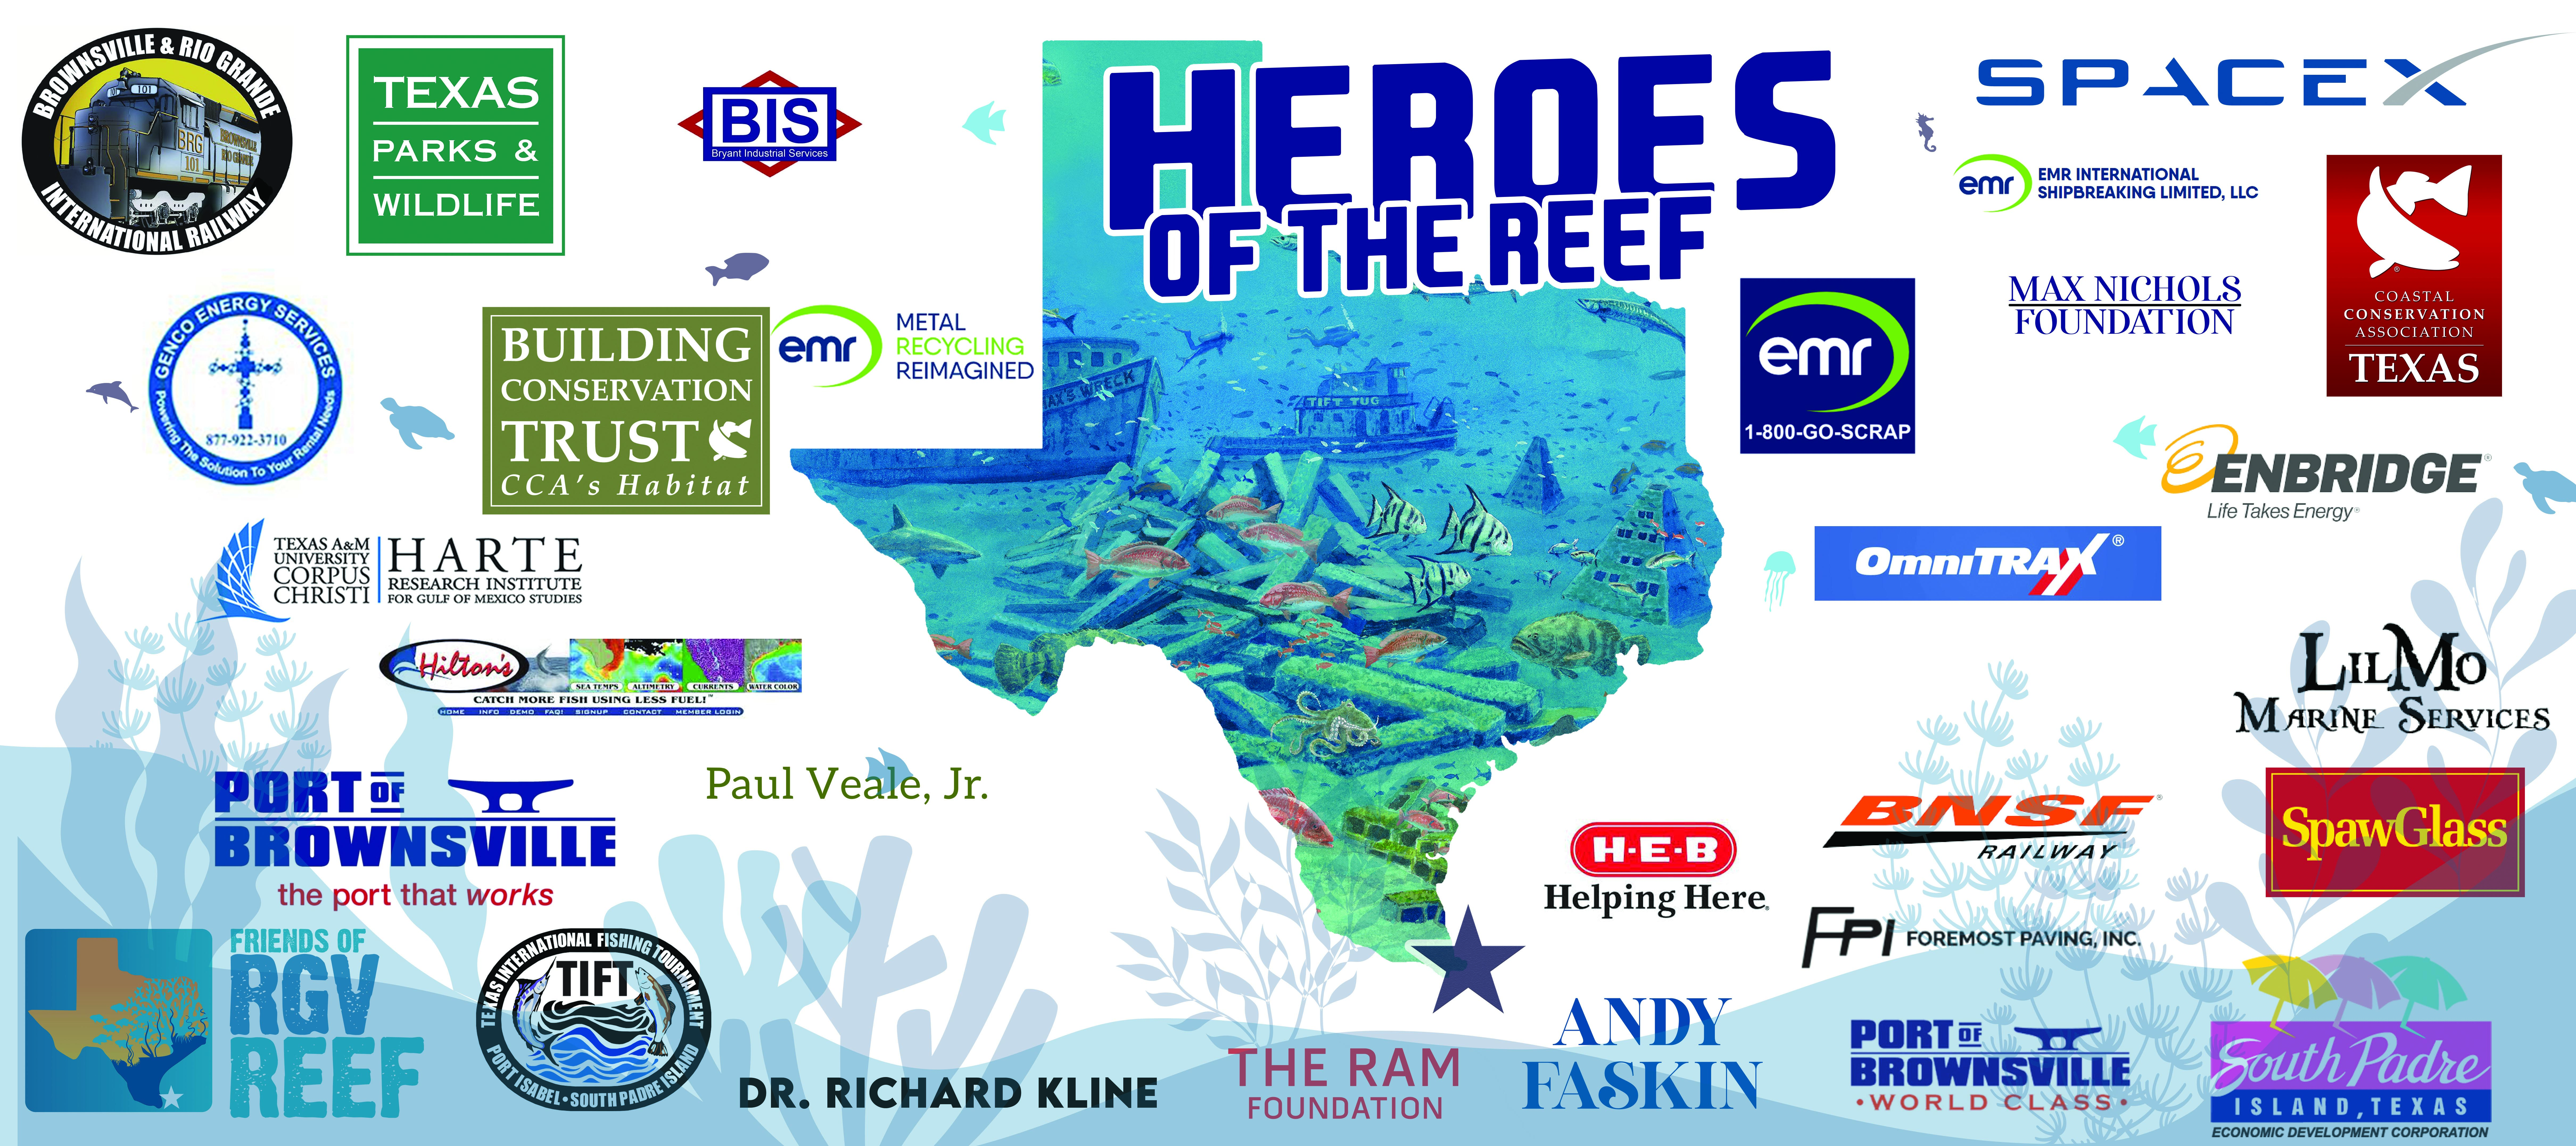 - small hereos size - RGV Reef